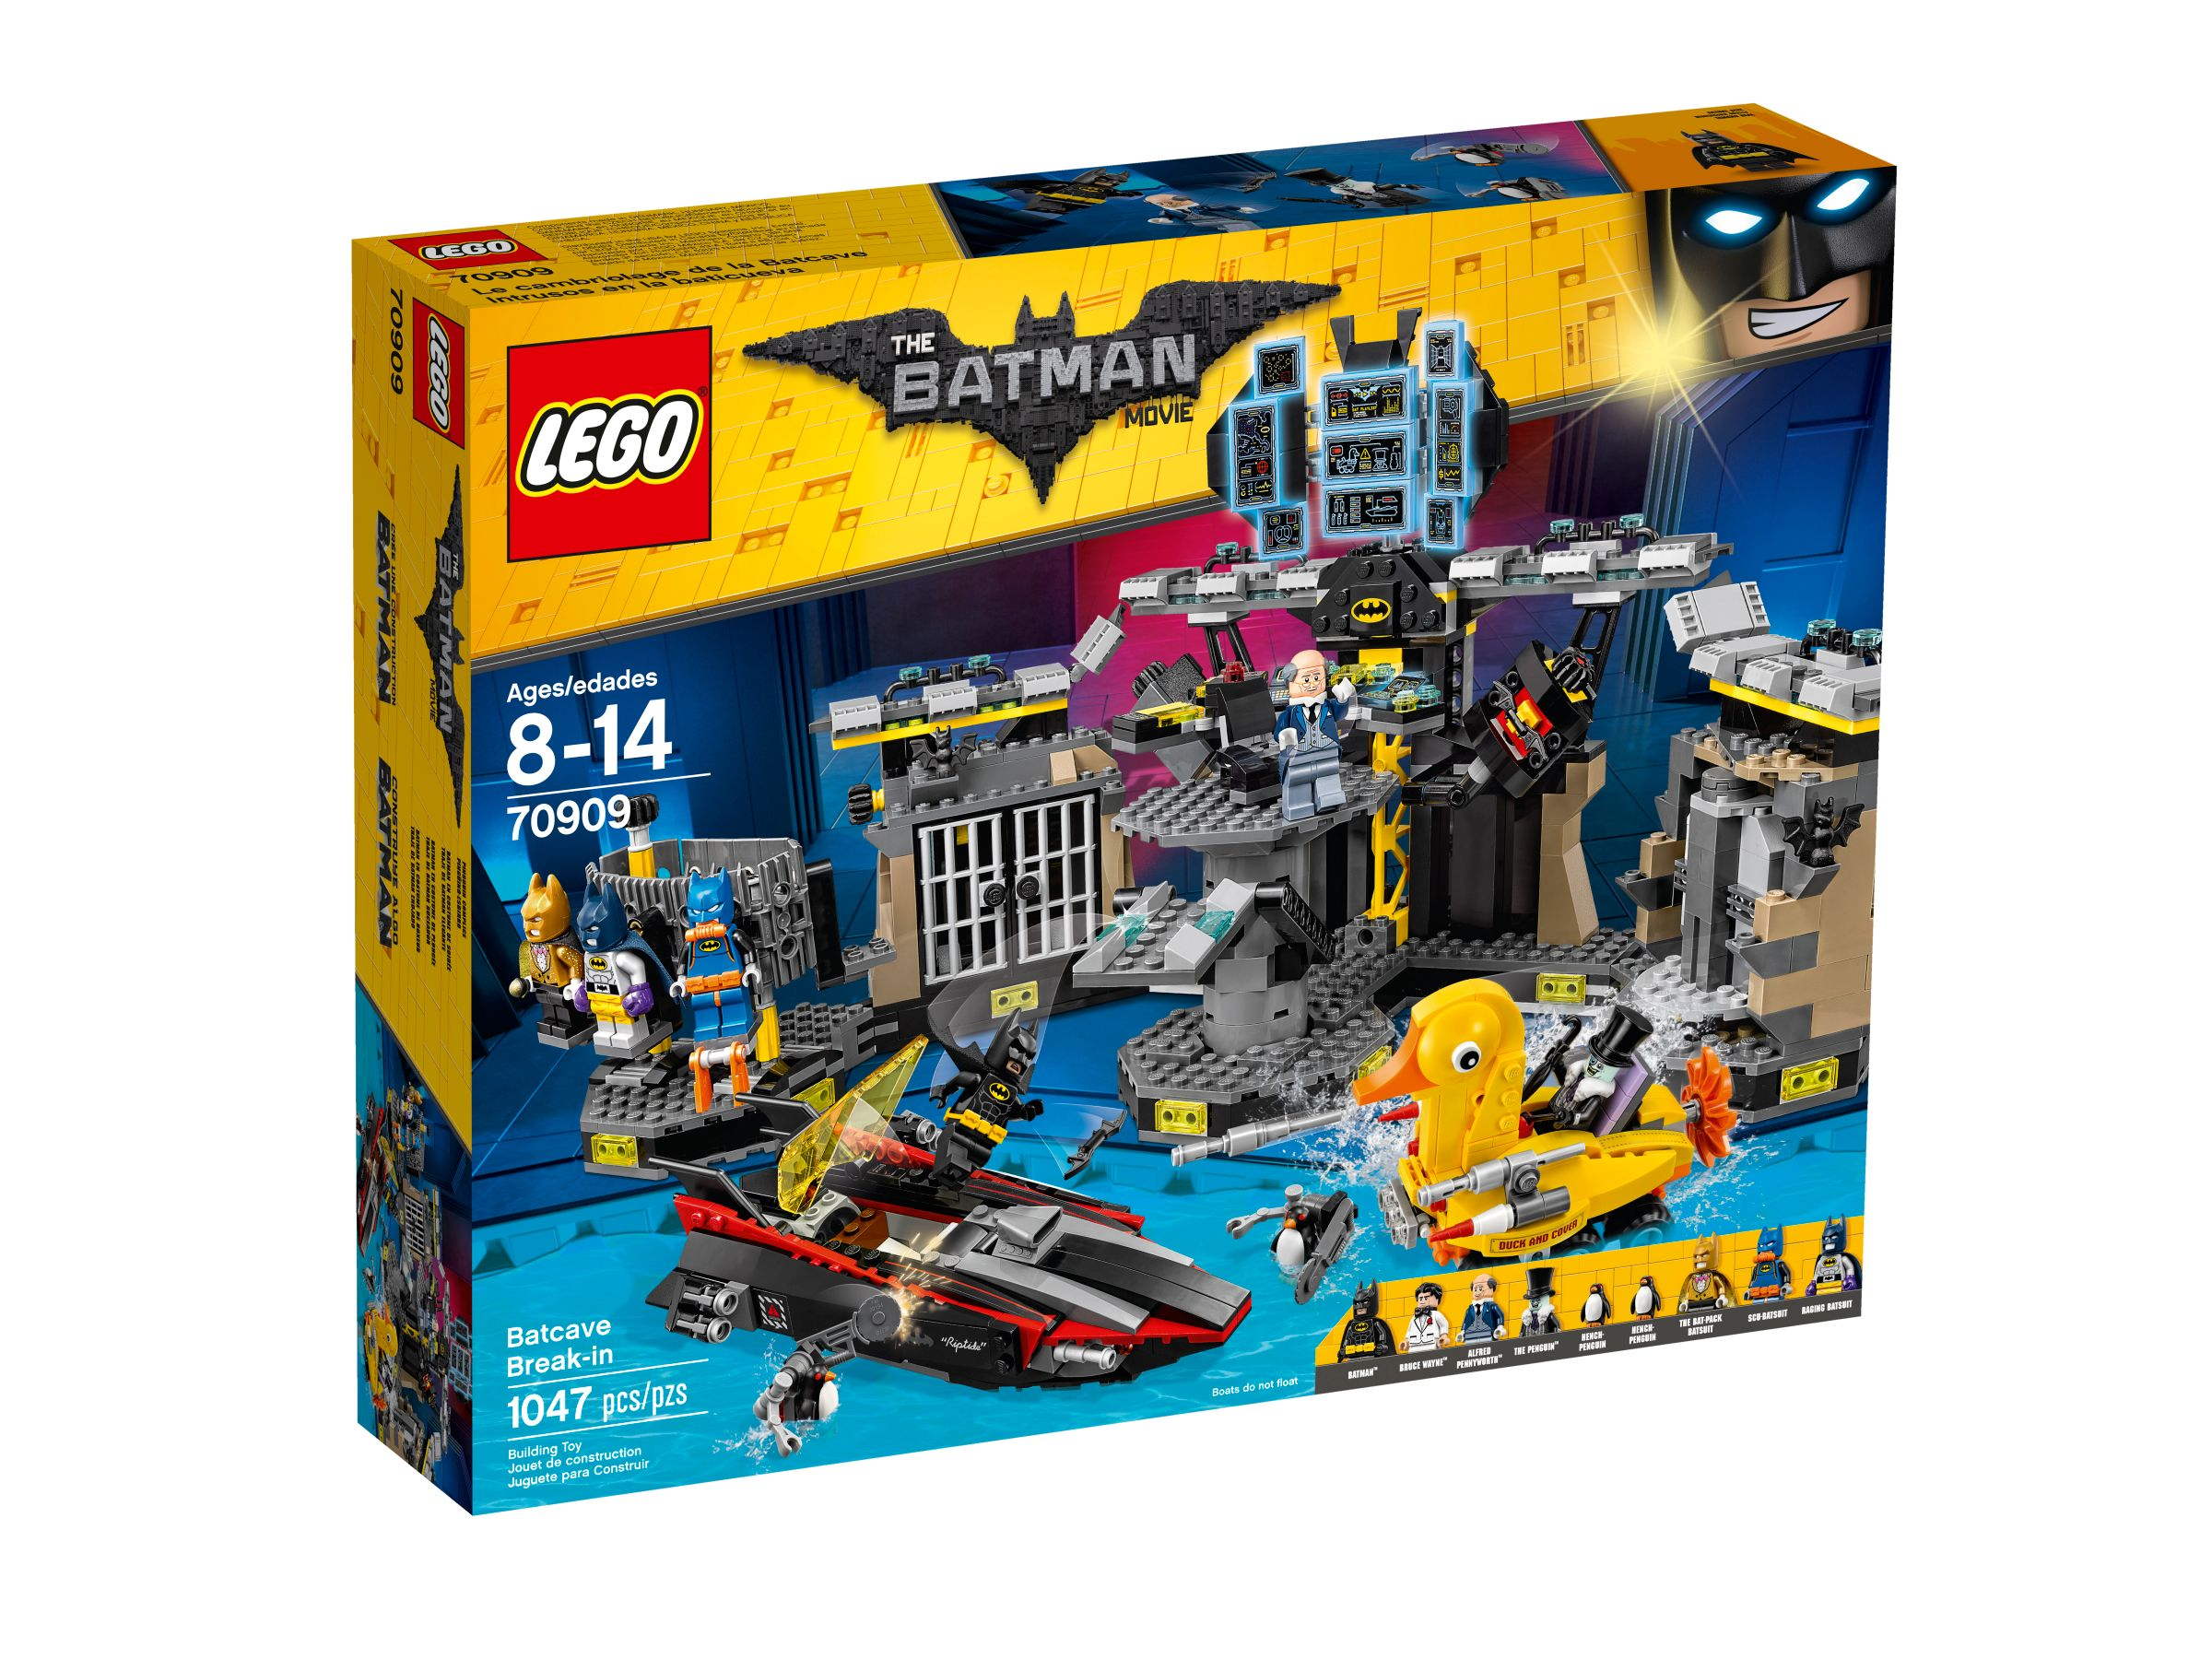 LEGO The LEGO Batman Movie 70909 Batcave-Einbruch LEGO_70909_alt1.jpg